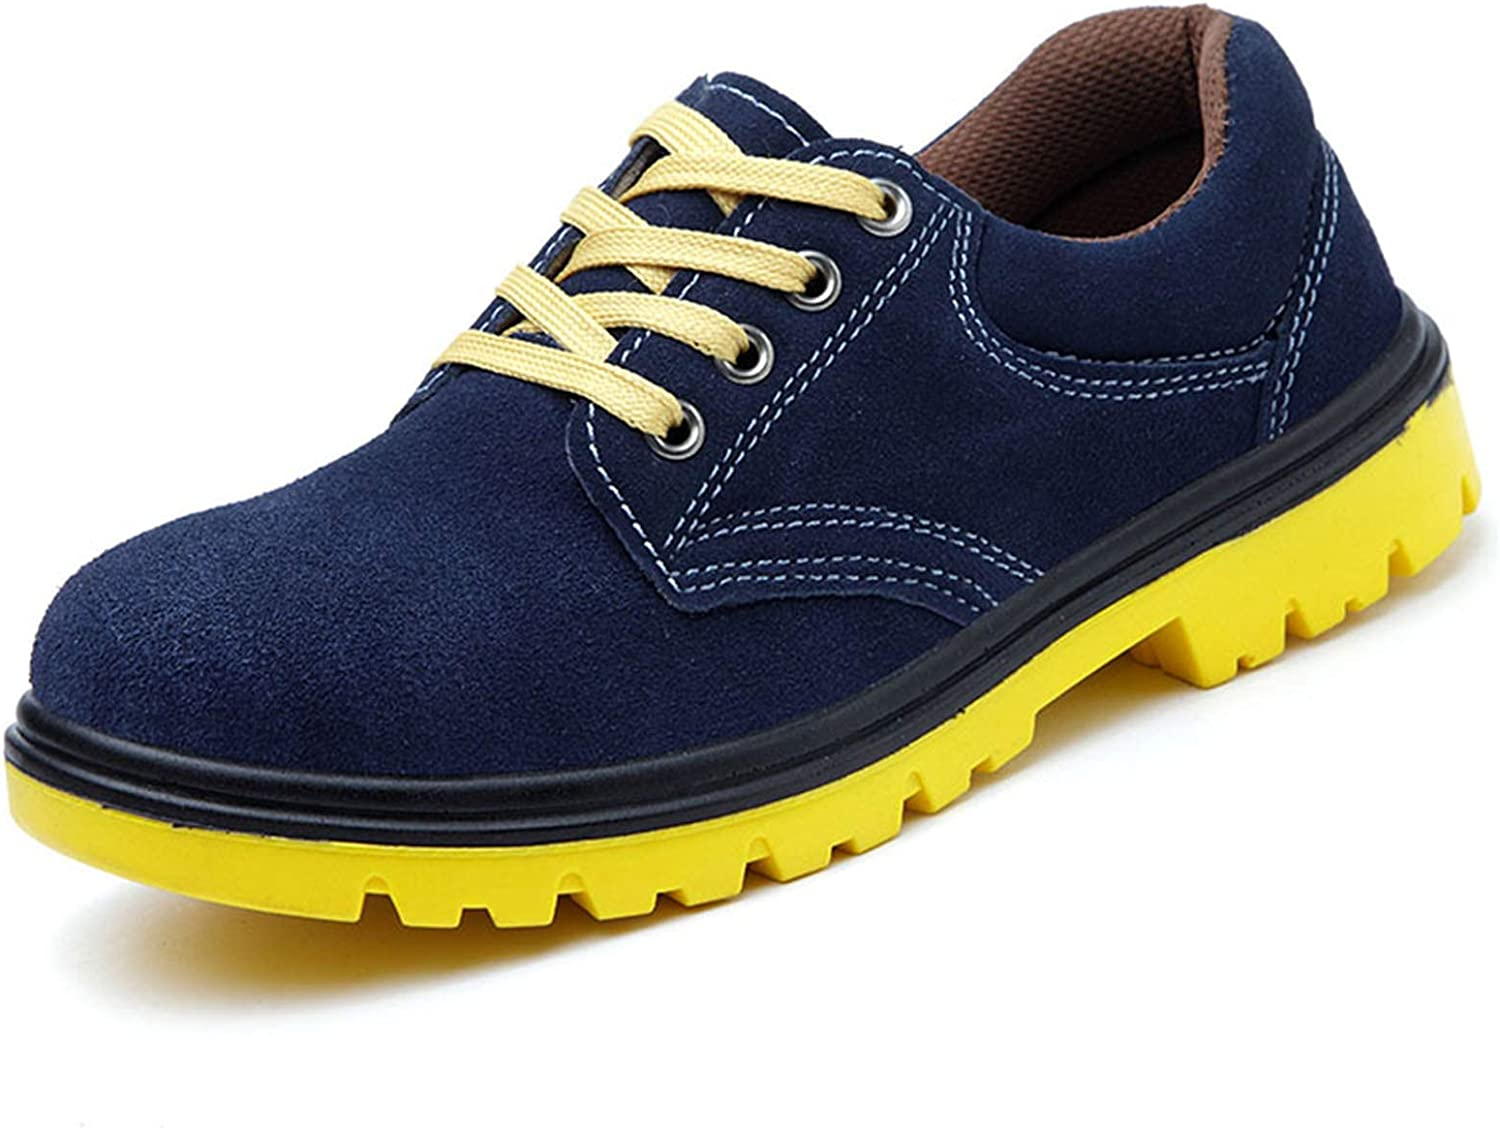 YLJXXY Men's Work Safety Shoes Breathable Industrial Steel Toe Outdoor Protection Footwear Puncture Proof Construction Slip Resistant Boots,Blue,40